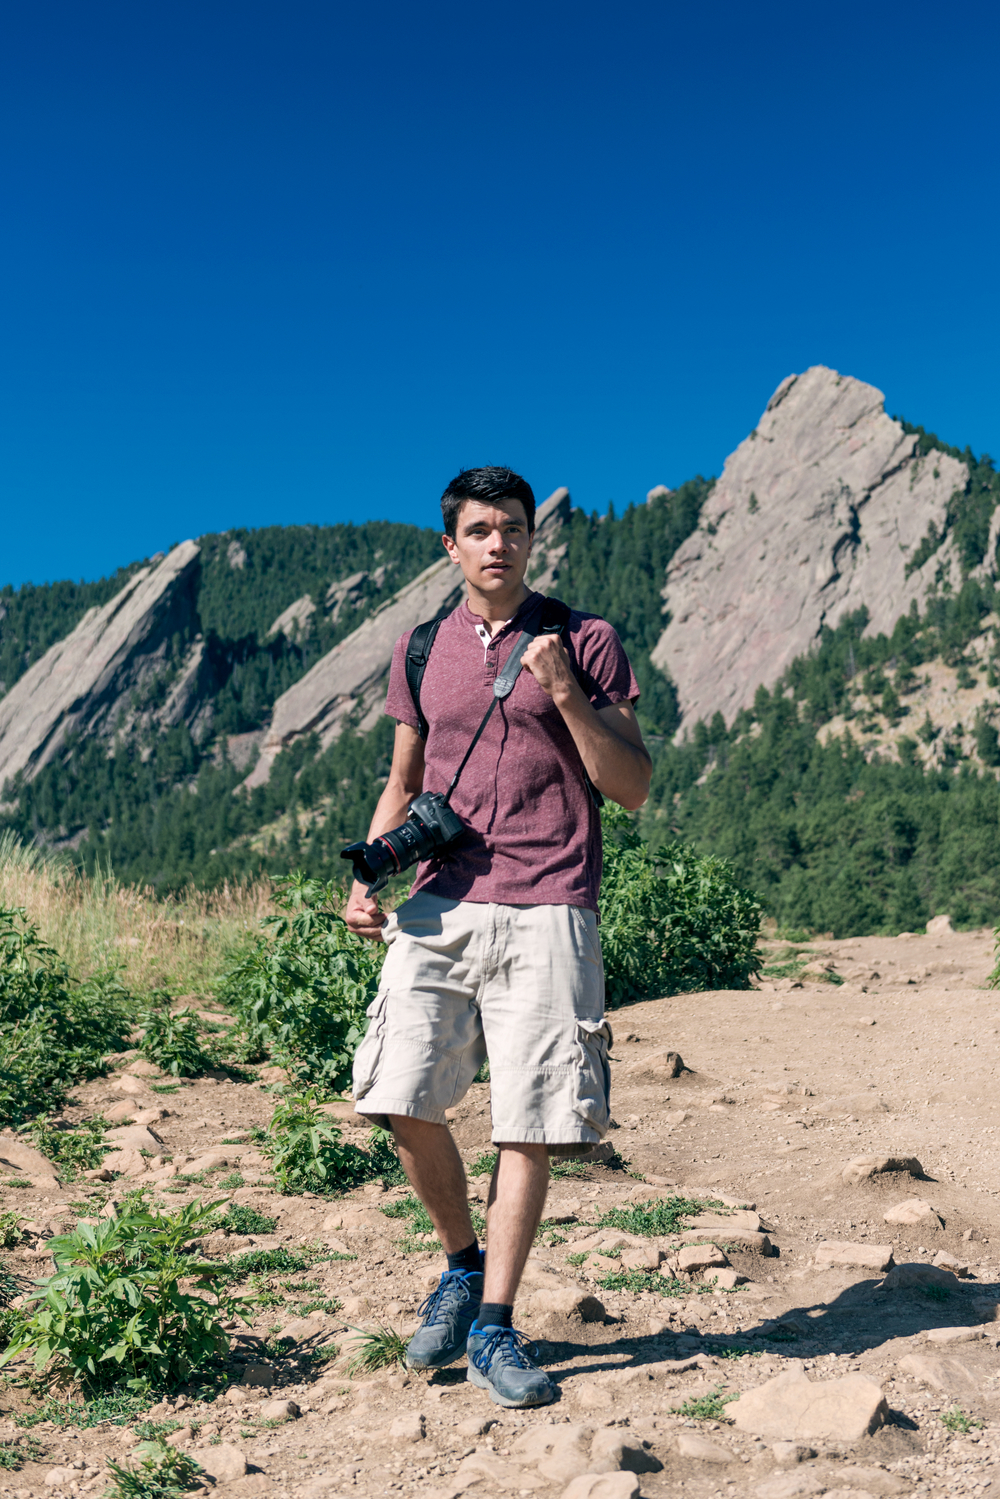 Advertisng image of male model with camera at the Flat Irons in Boulder, CO